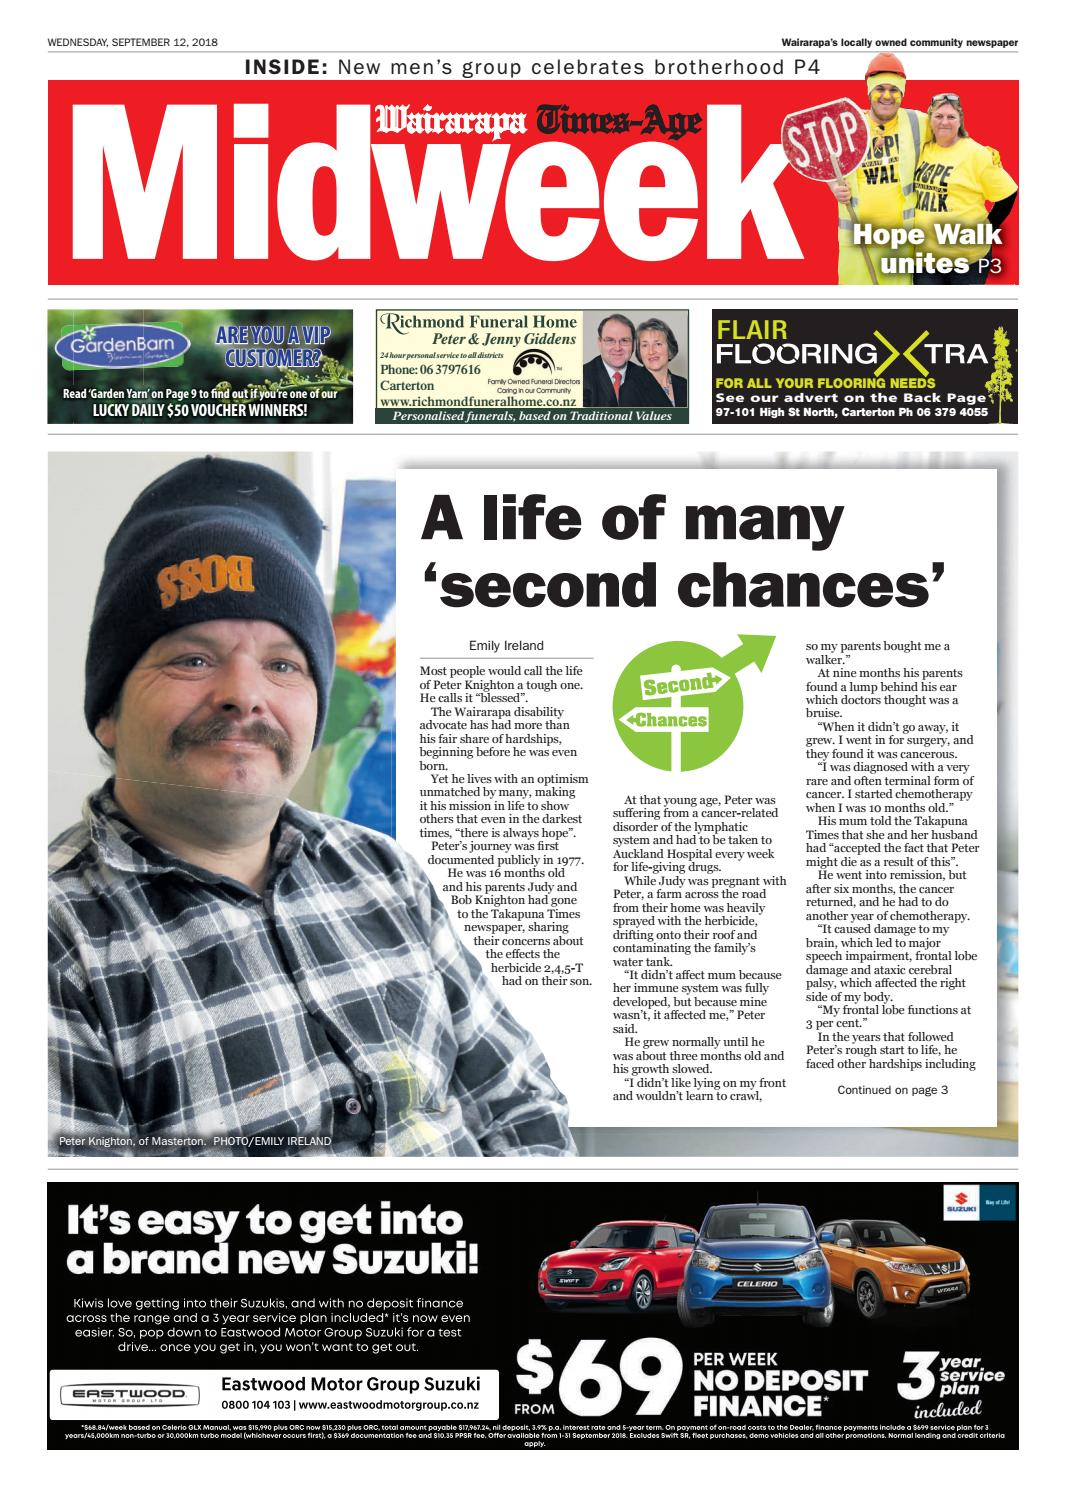 aed73203f0ac4 Wairarapa Midweek Wed 12th Sept by Wairarapa Times-Age - issuu